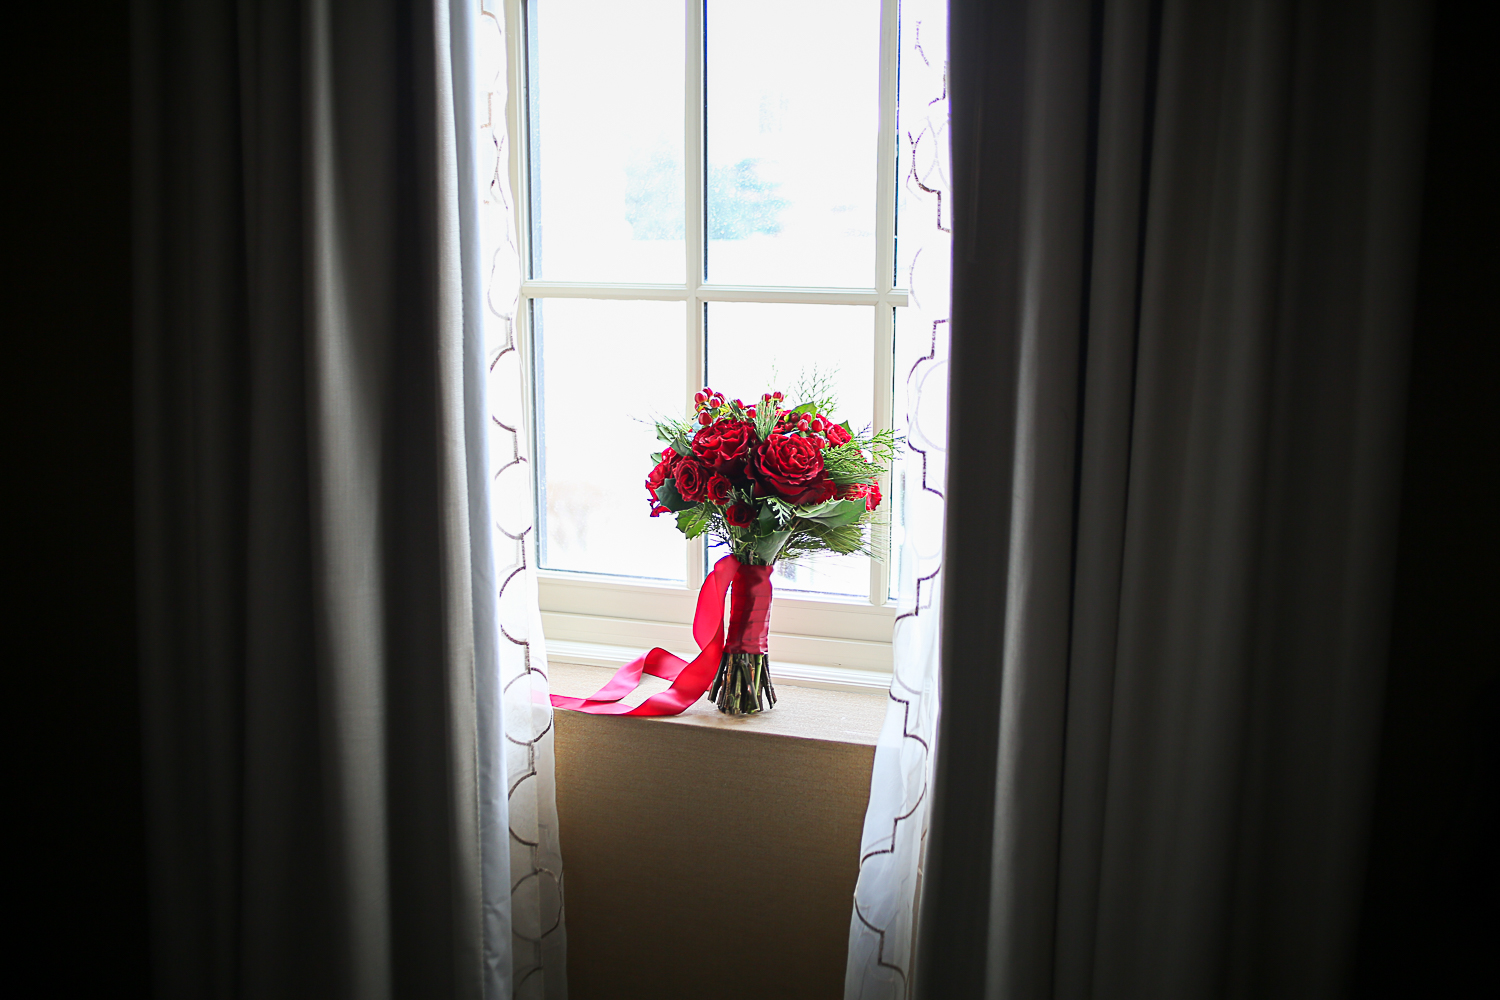 Red Bridal Bouquet - Christmas Themed Wedding at Hotel Roanoke | Roanoke, Virginia Wedding Photographer